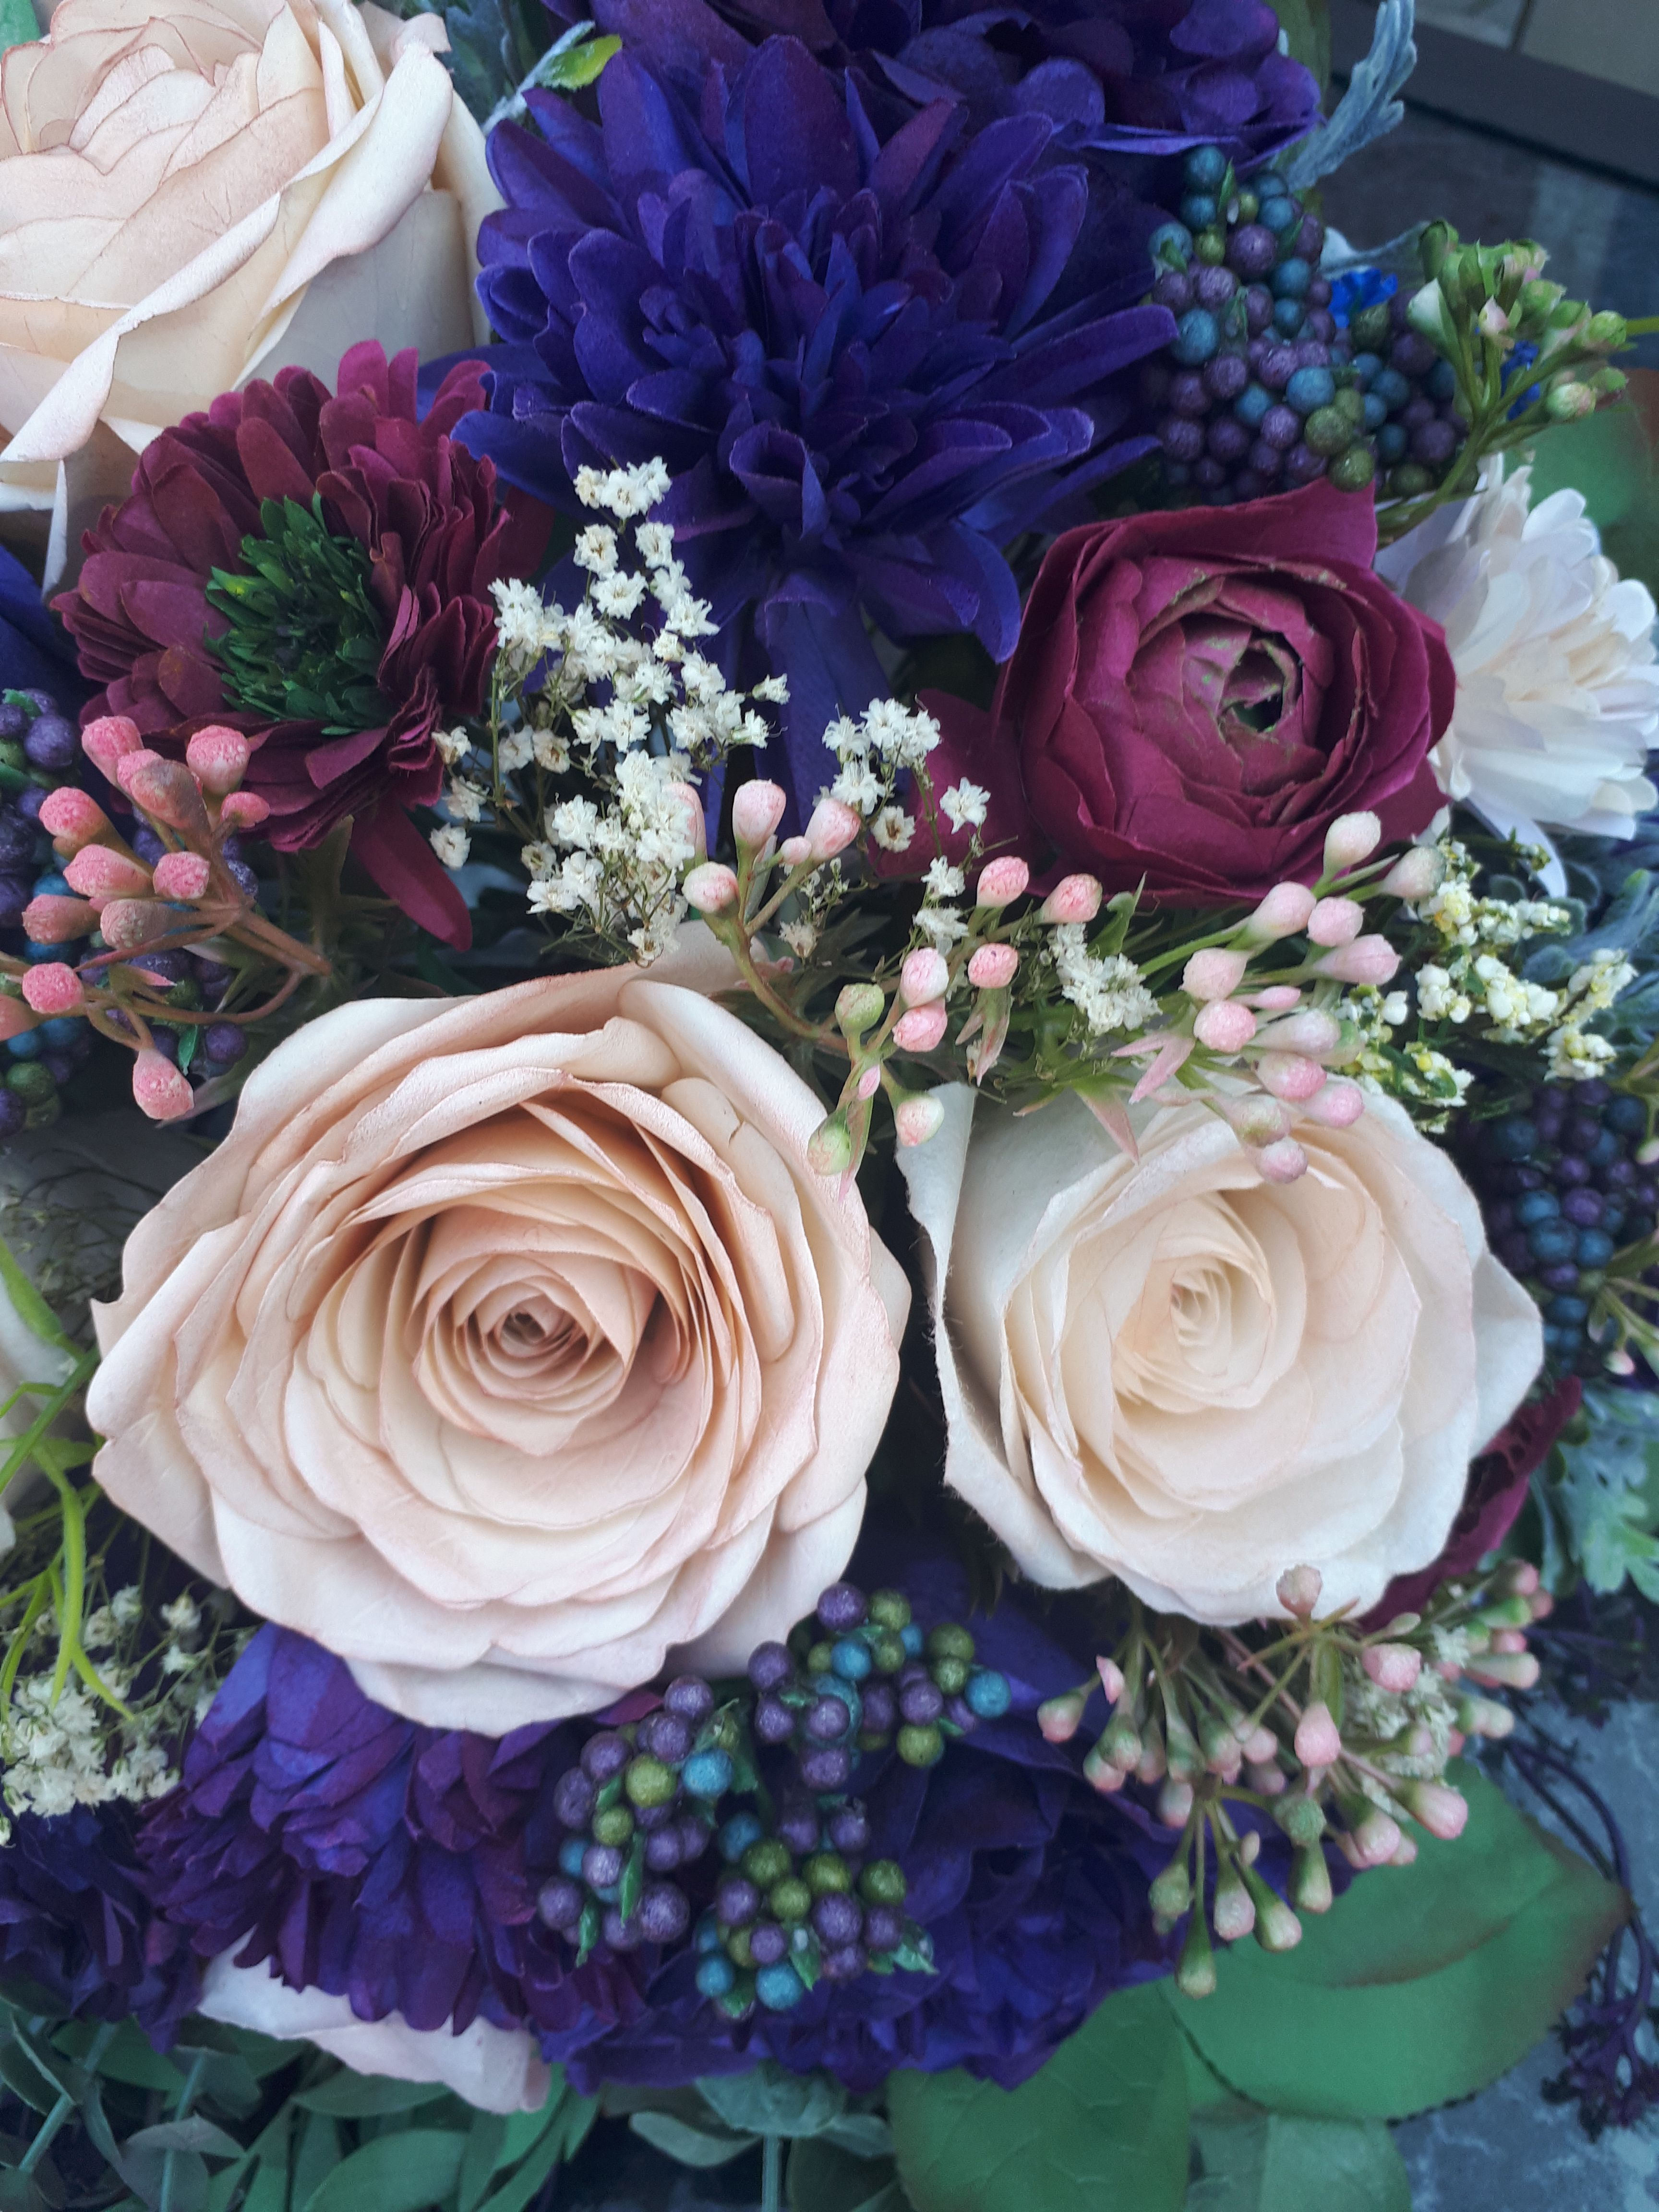 Pin by Roses N\' Lace Studio on Paper Flower Bouquets | Pinterest ...